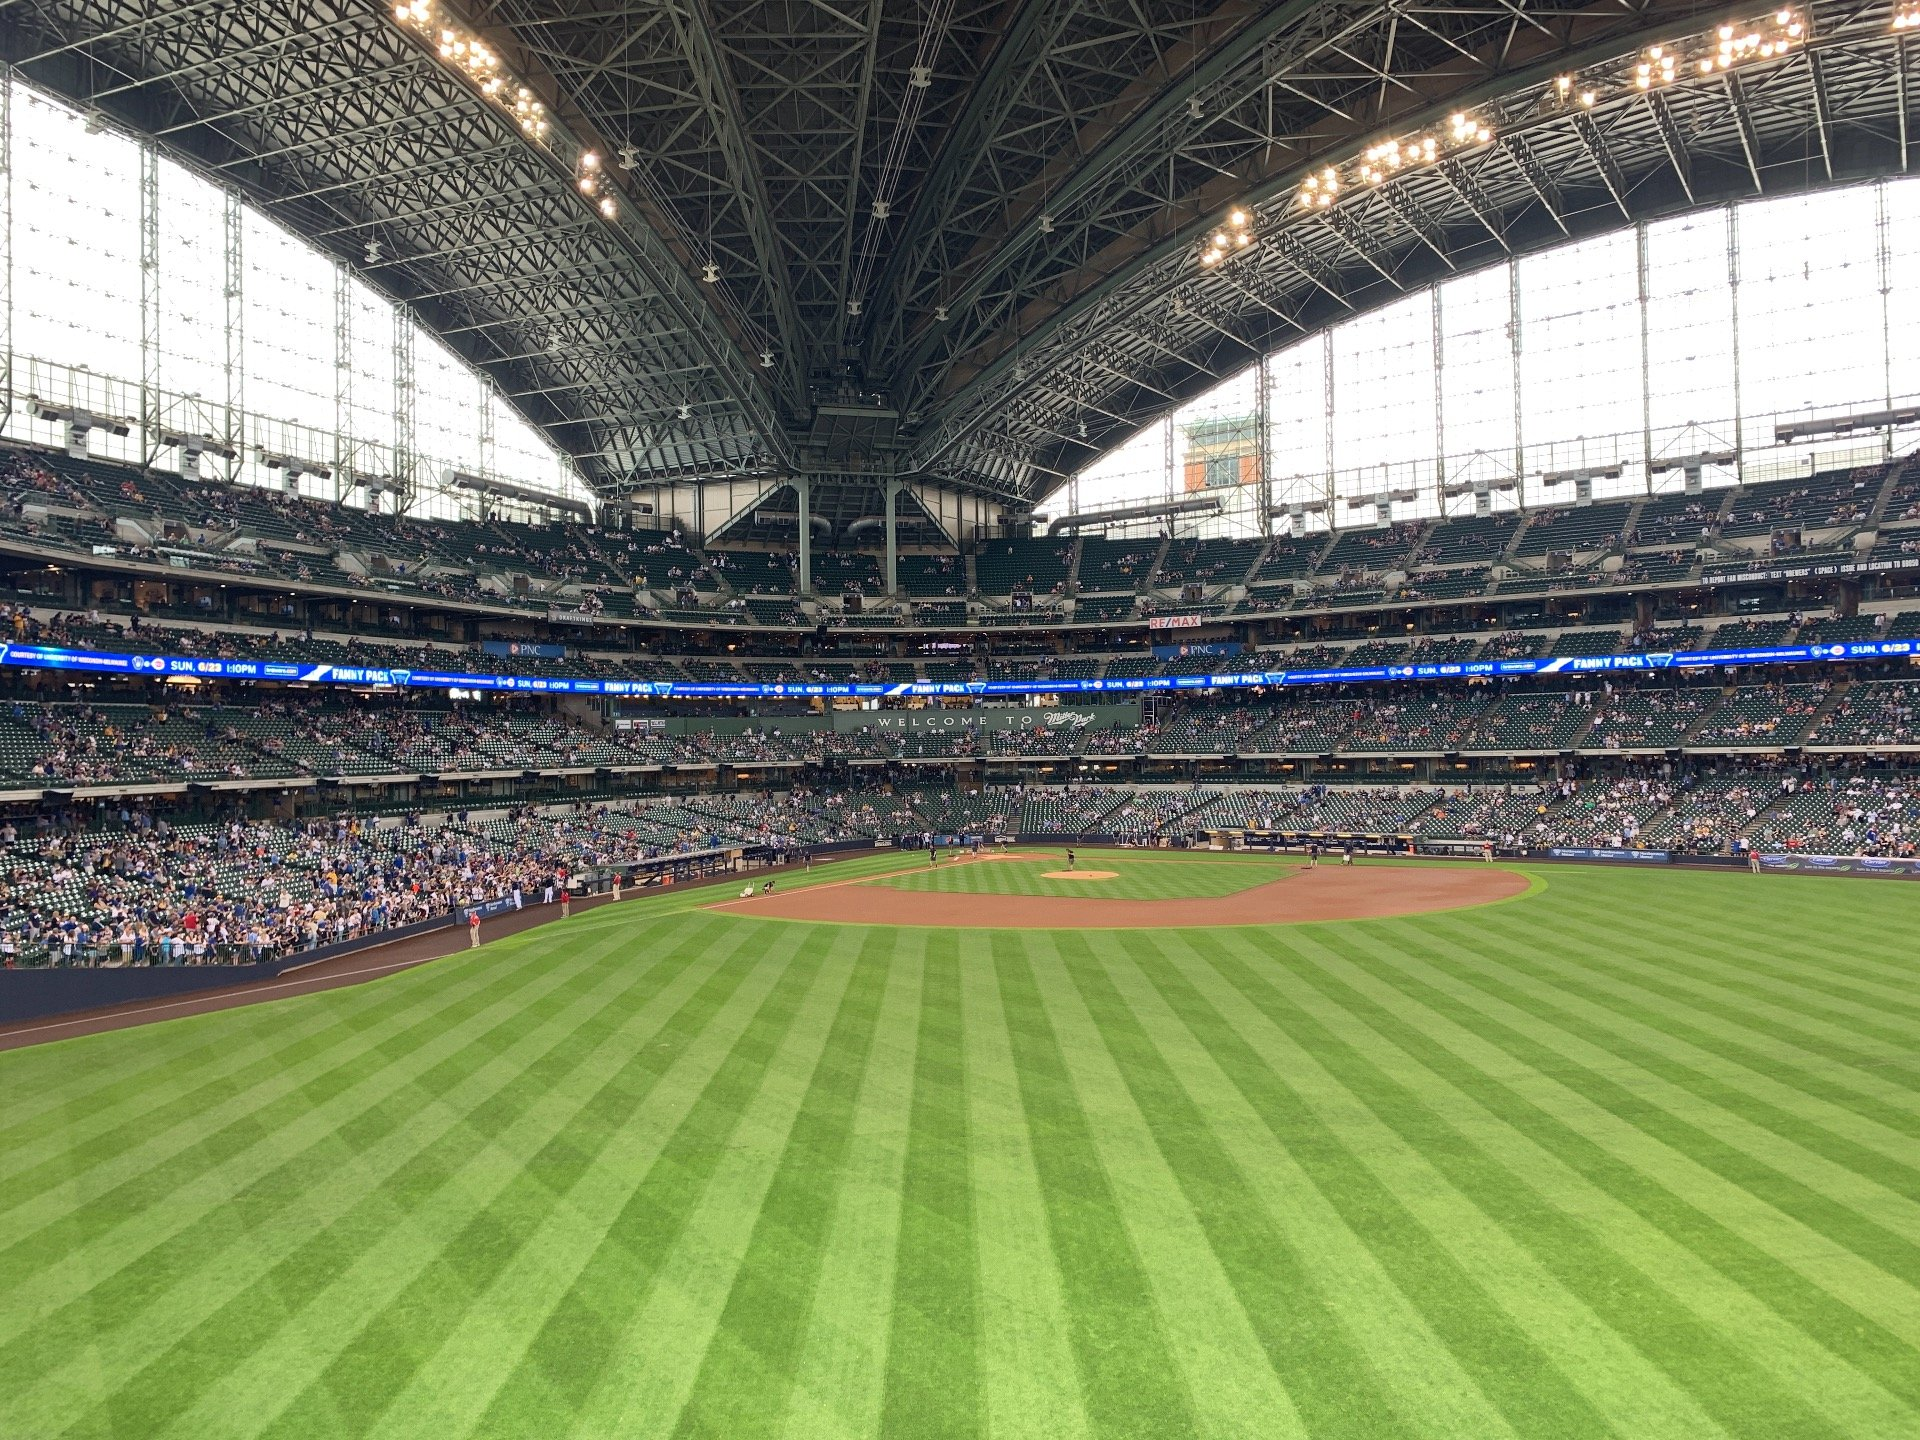 Miller Park Section 203 Row 1